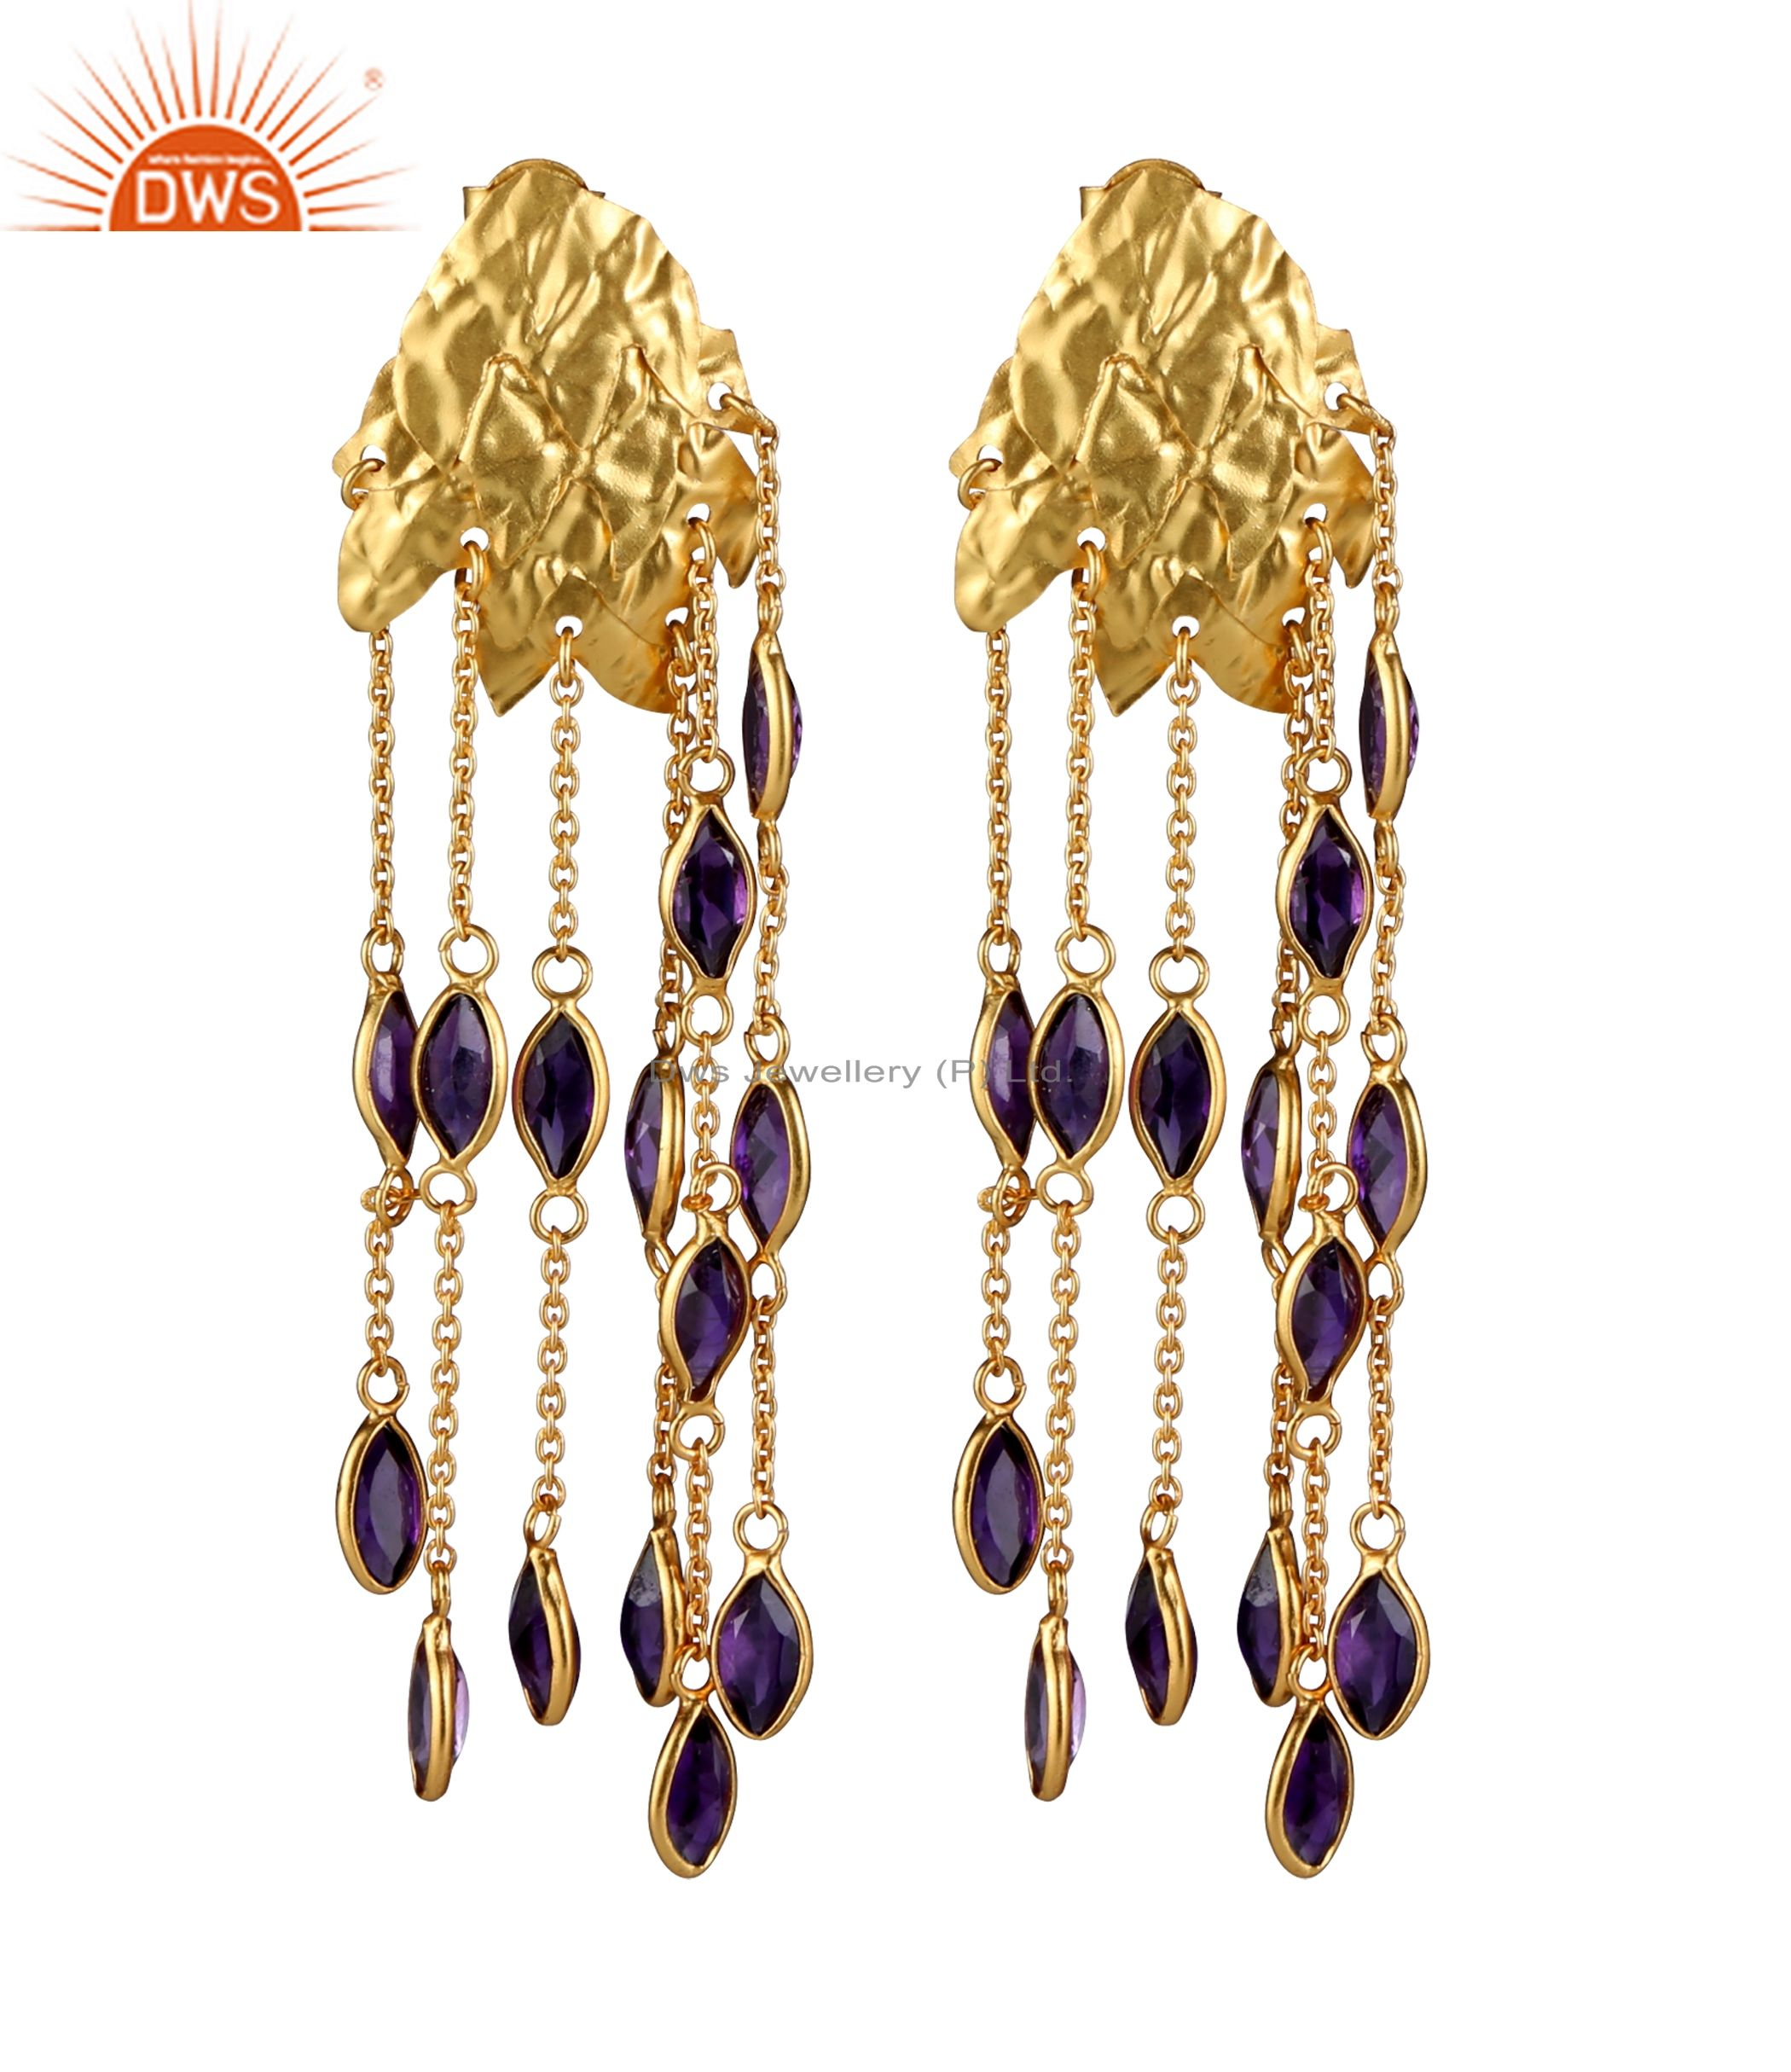 18K Yellow Gold Plated Sterling Silver Lapis Lazuli Chain Chandelier Earrings